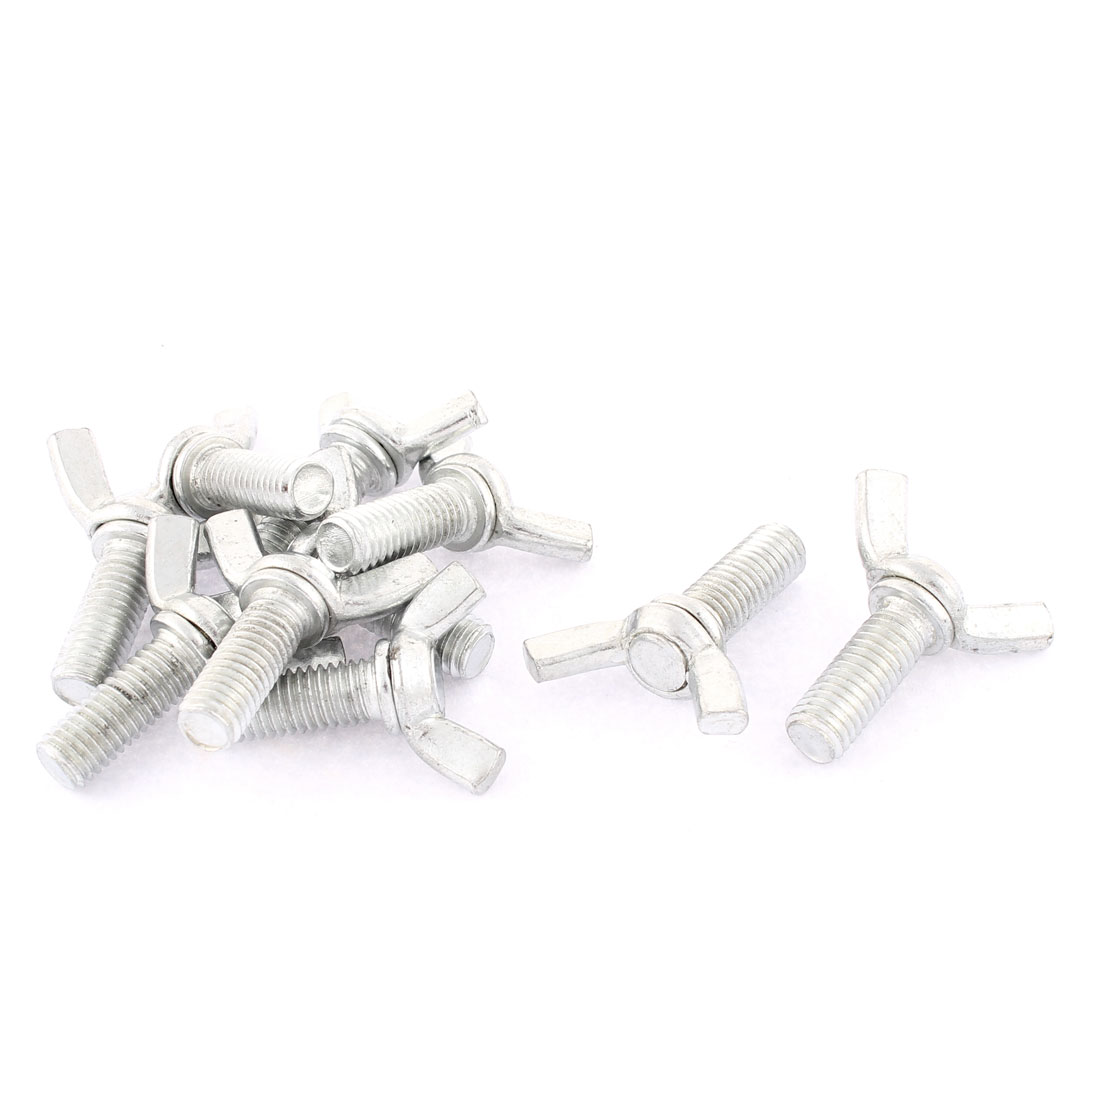 Metal Butterfly Screw Wing Bolts 7mm x 20mm Thread Silver Tone 10pcs